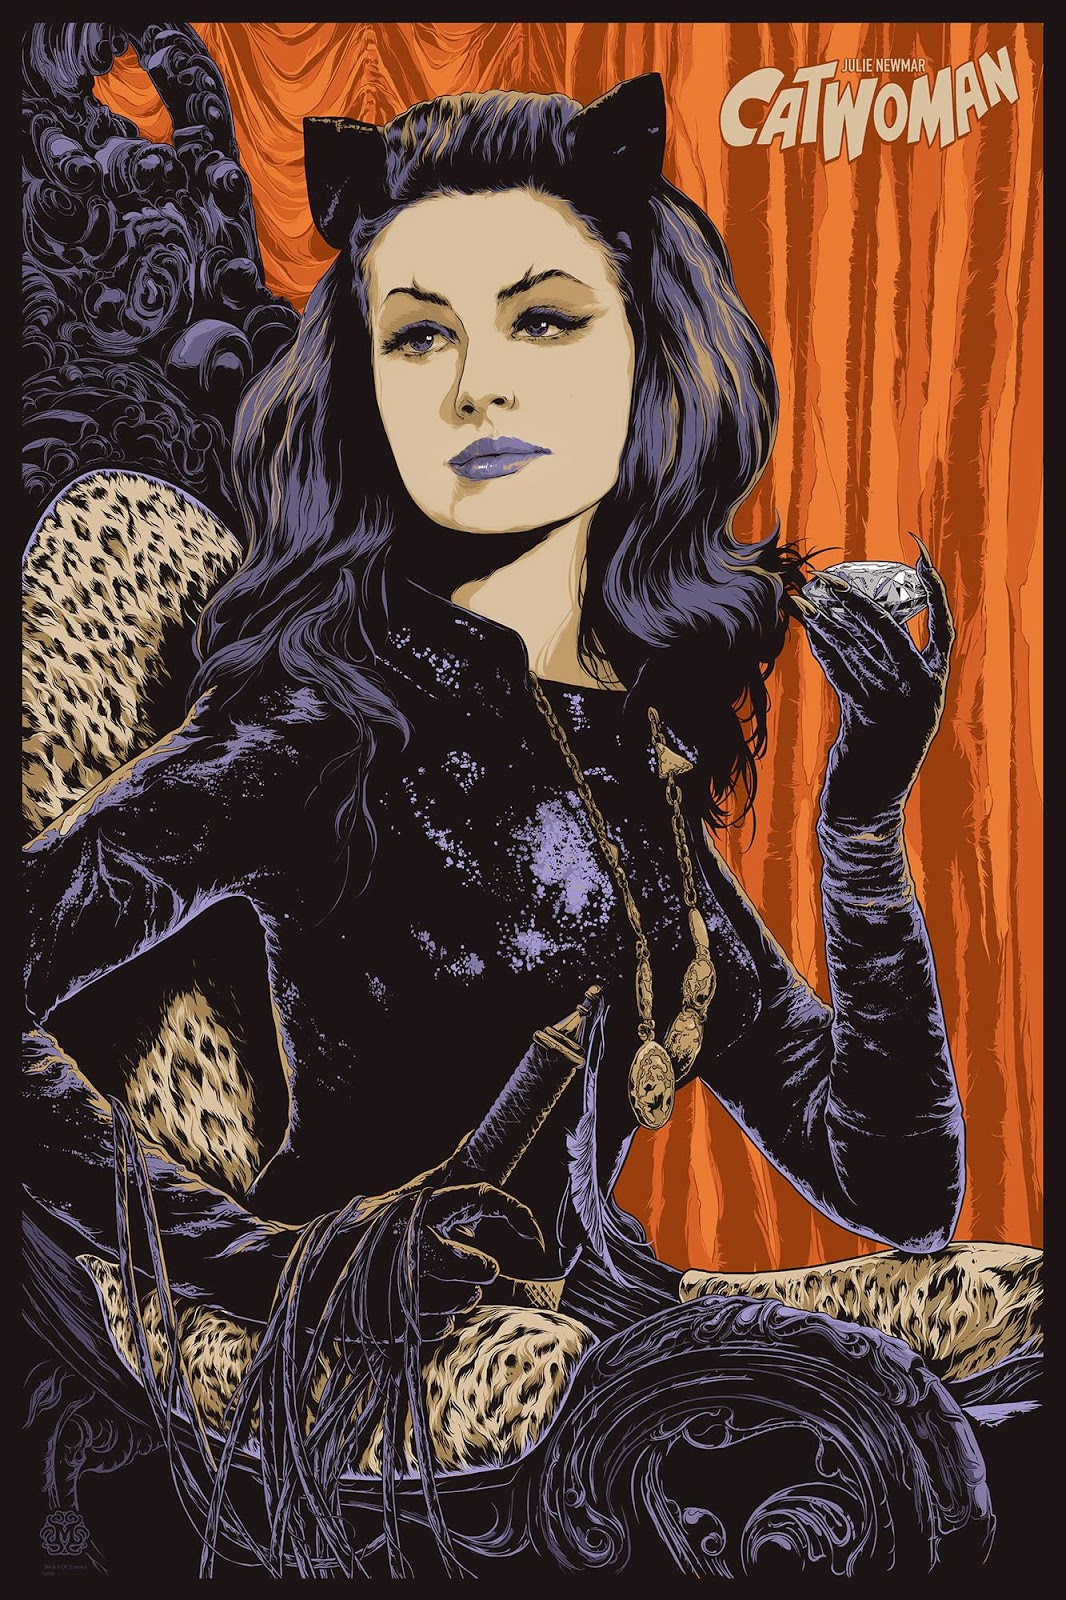 Julie Newmar Catwoman Poster The Julie Newmar Catwoman